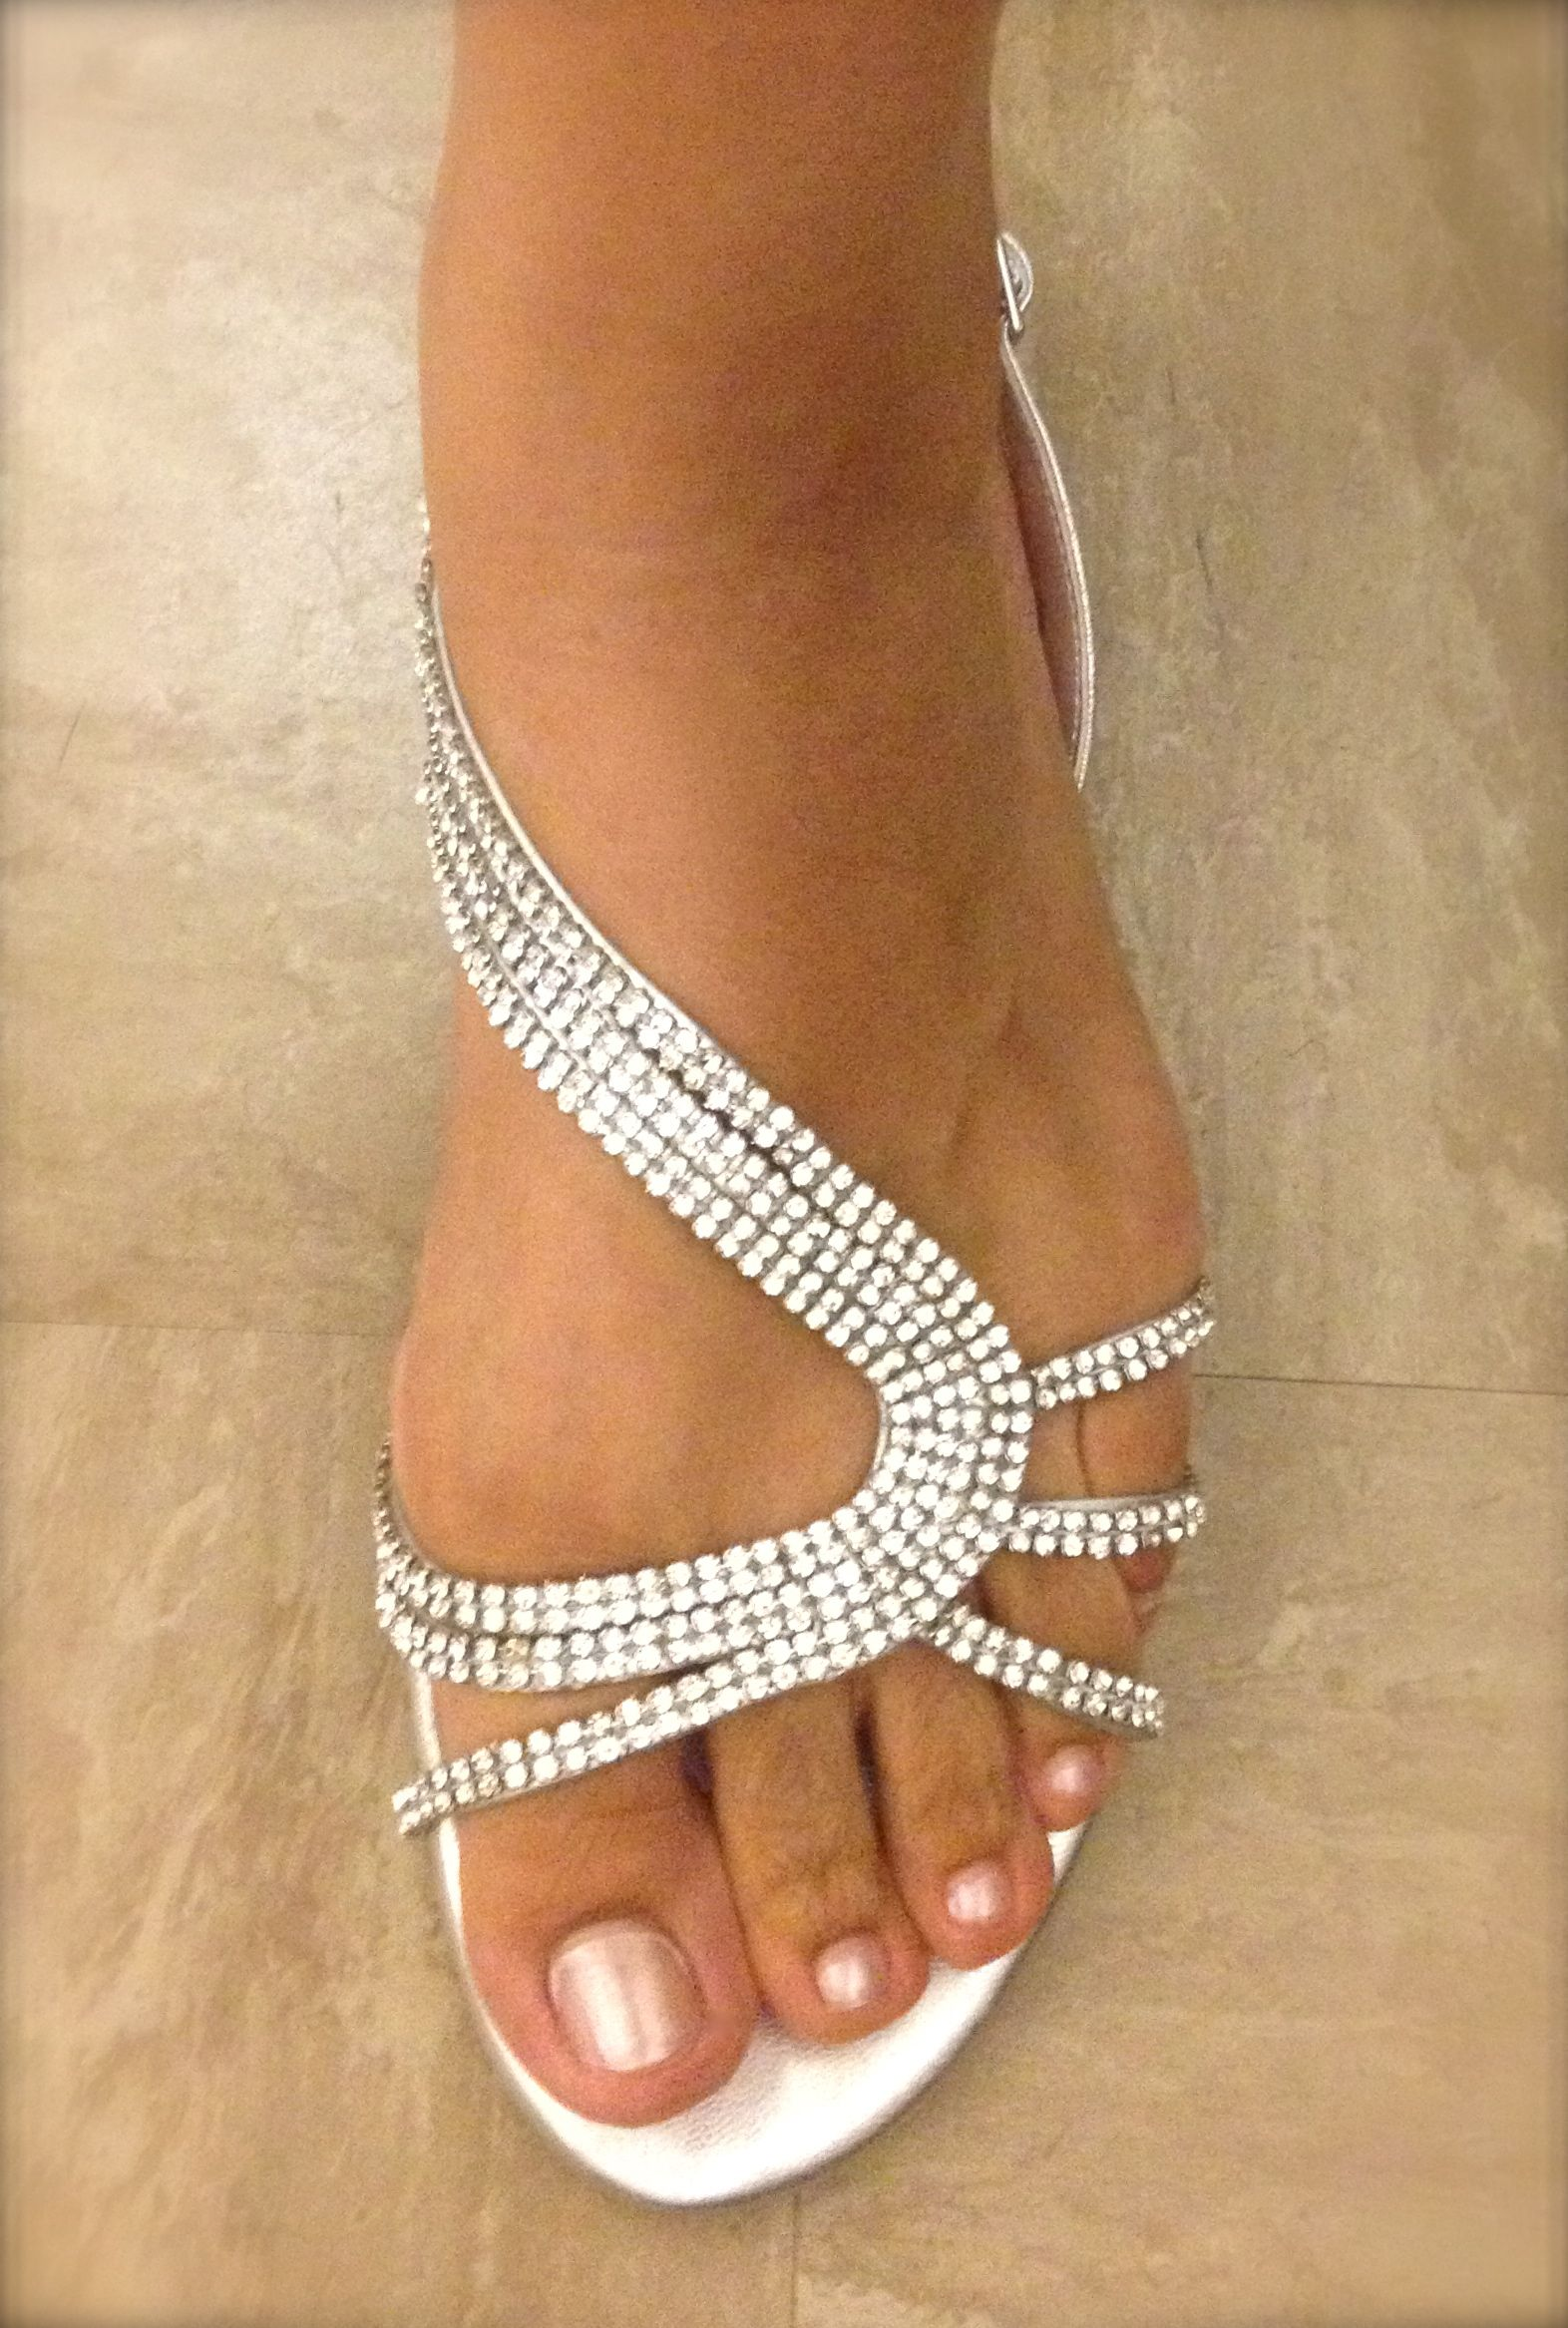 Flat rhinestone sandals for wedding - Very Pretty Sparkly Sandals From Dune